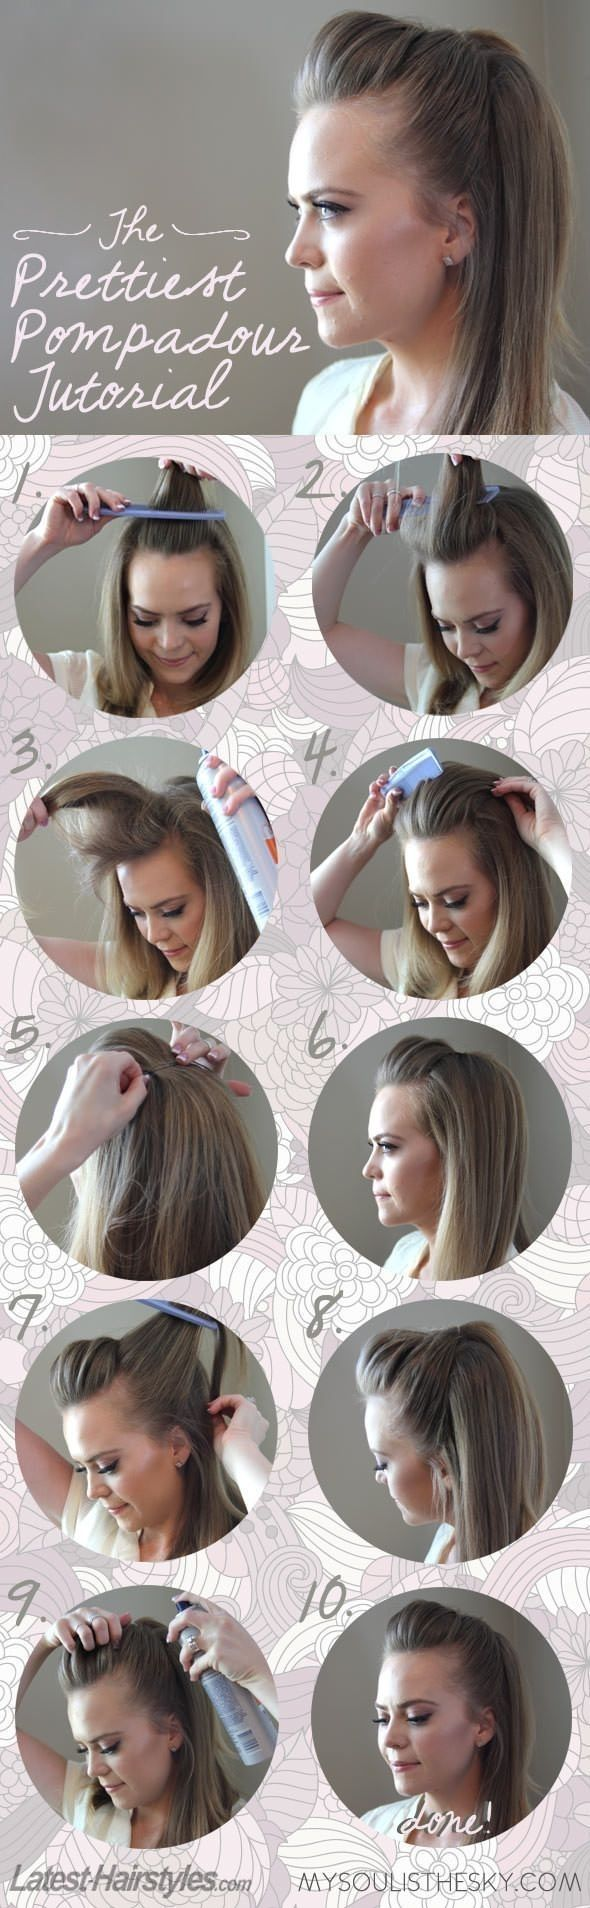 Stylish Pompadous Hairstyle Tutorial